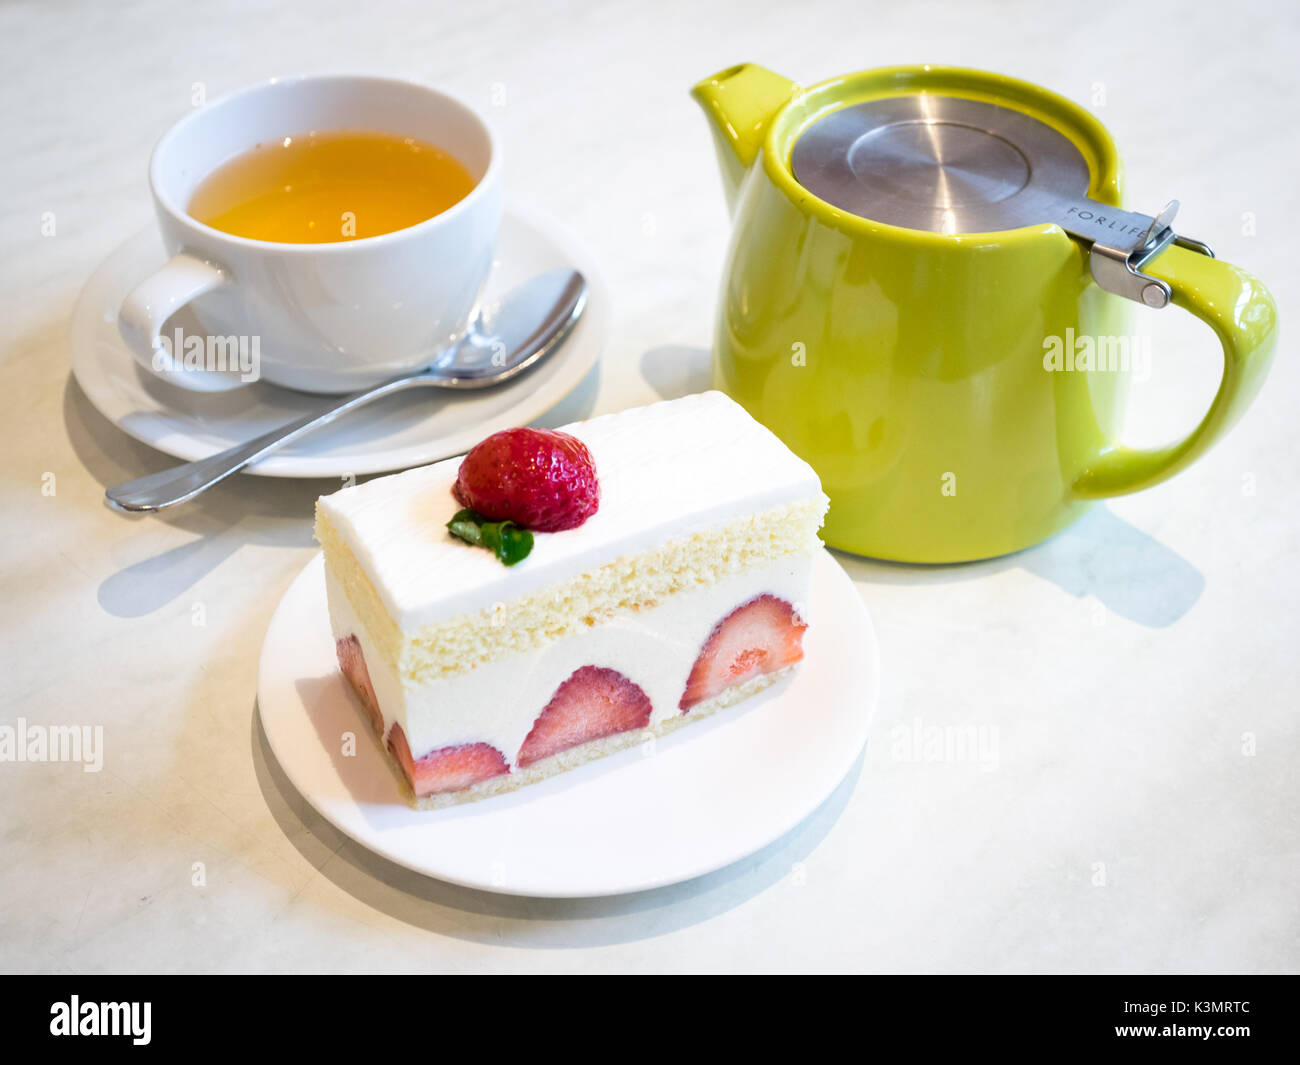 A slice of delicious strawberry shortcake, a popular dessert, and a cup of ginger tea. - Stock Image